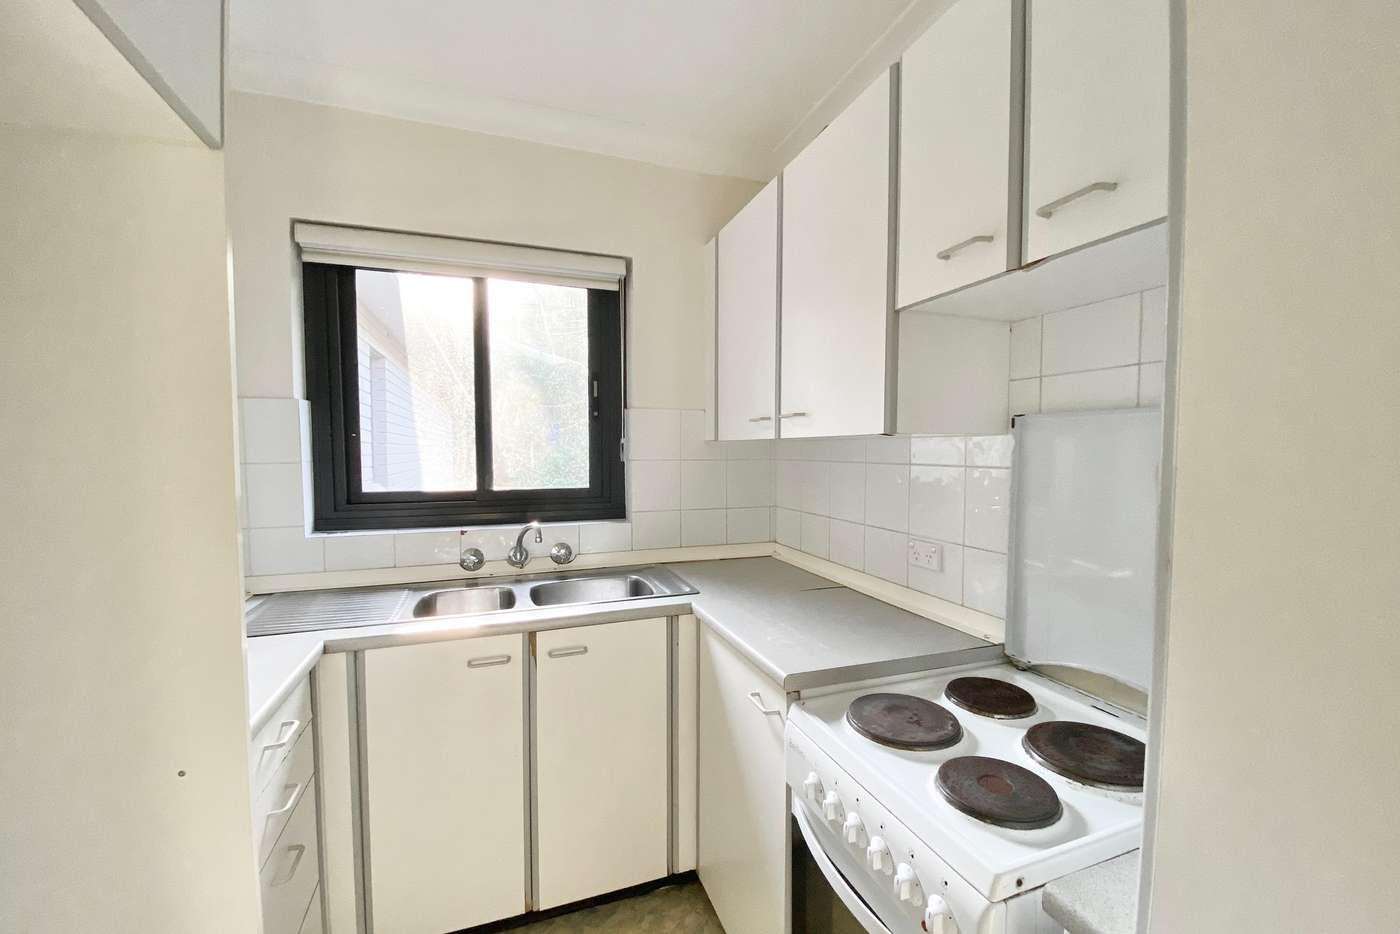 Main view of Homely apartment listing, 26/1A Leeton Avenue, Coogee NSW 2034